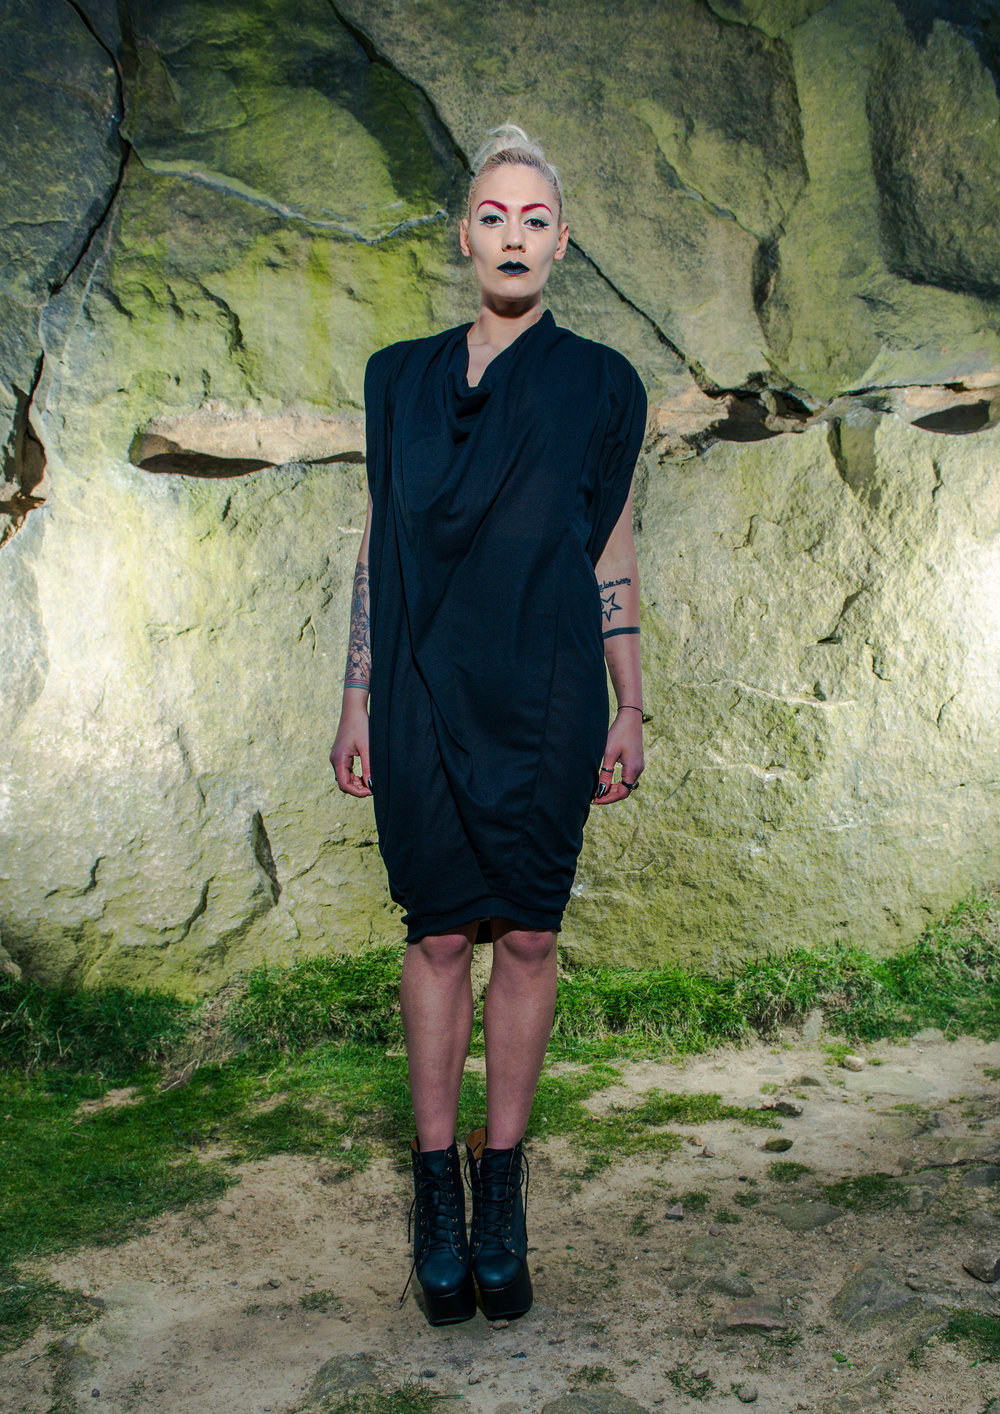 zaramia-ava-zaramiaava-leeds-fashion-designer-ethical-sustainable-tailored-minimalist-aya-black-sheer-fitted-versatile-drape-cowl-styling-womenswear-models-photoshoot-location-14